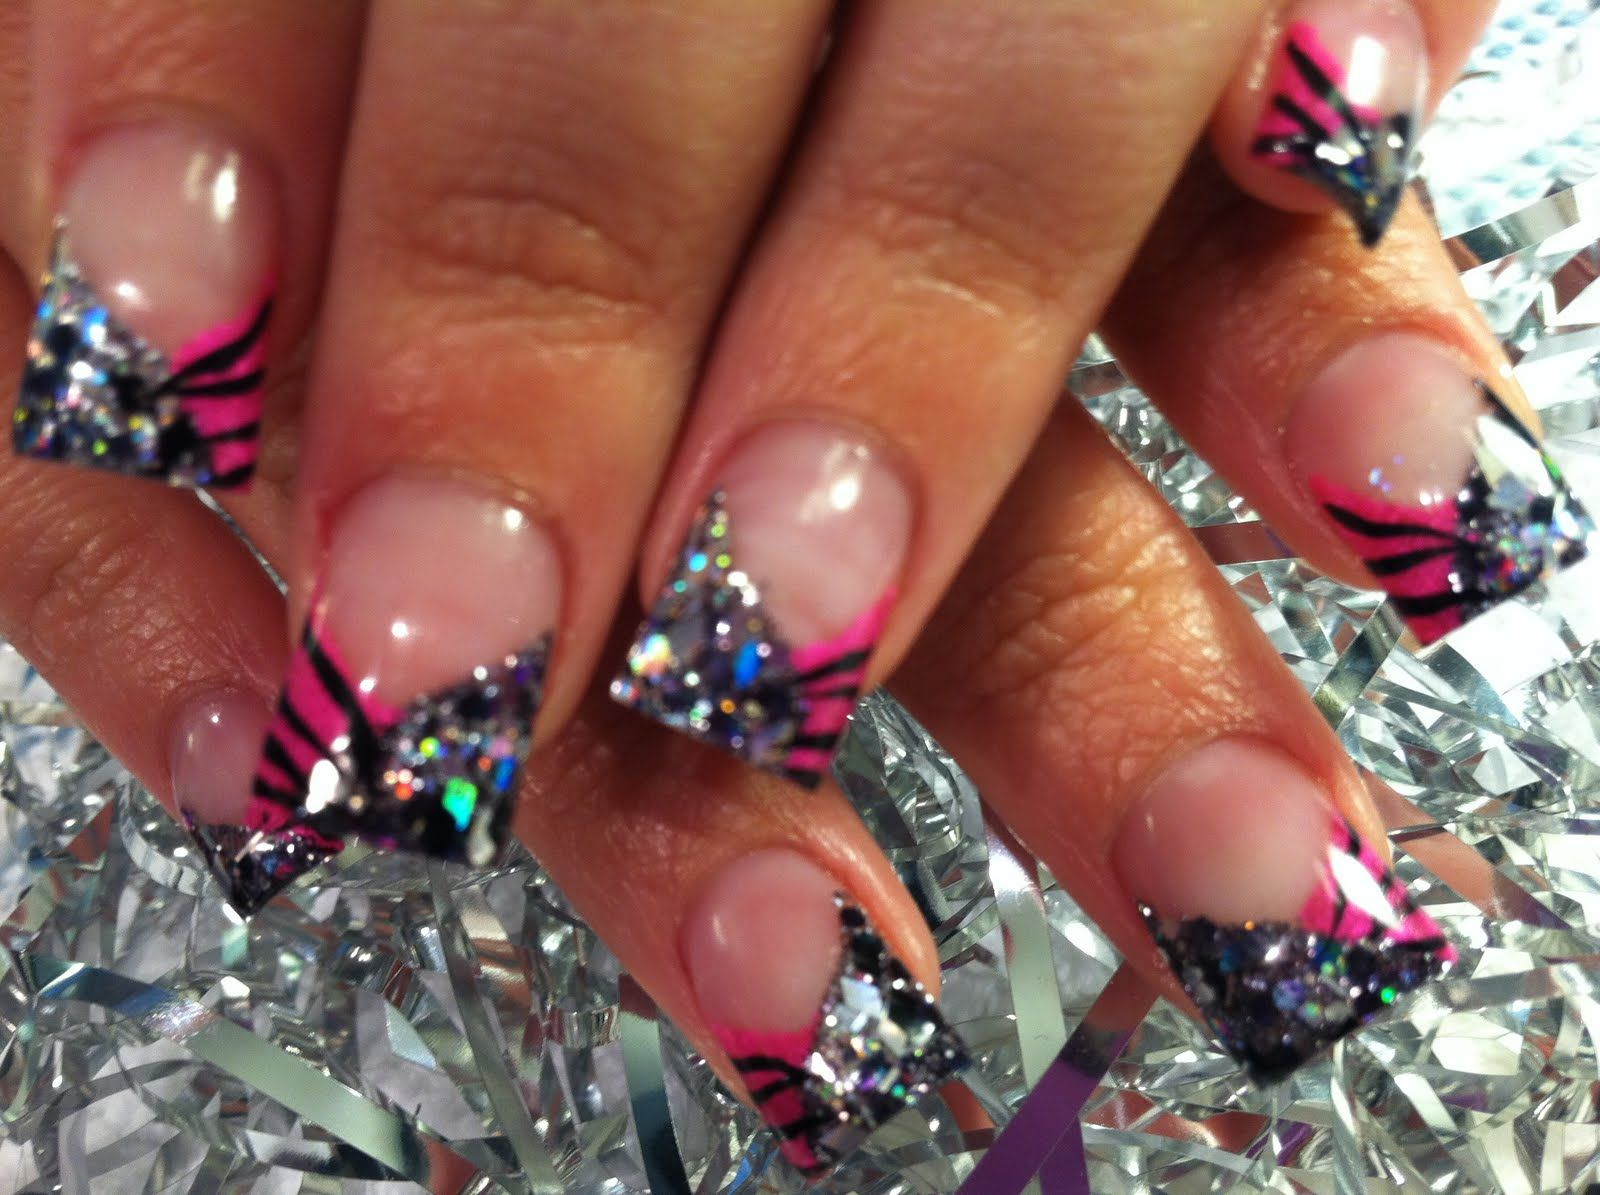 Pink zebra nails nails pinterest - Printed The Pink Zebra Nails Nail Bling Closet Places Zebras Love This Hairstyles